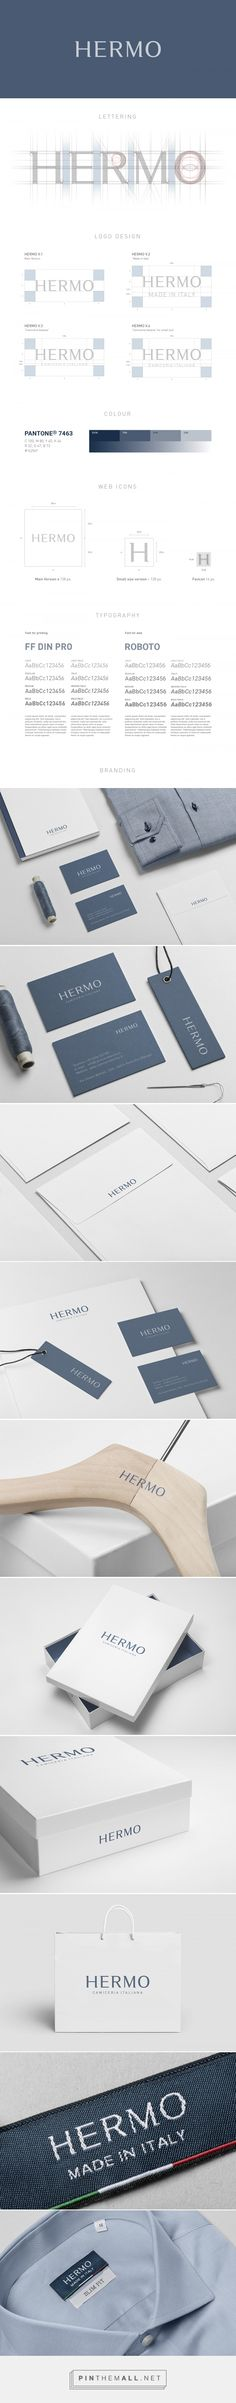 HERMO / Rebrand on Behance.  Founded in 1972, Hermo is an italian shirt manufacturing company, which mainly produces men's shirts with the purpose of creating high-quality men's clothing at a competitive price, with a particular focus on custom-fit.  Attention to detail, accuracy and precision in the precious hands of expert tailors are a symbol of the excellence of the Italian craftsmanship.  The brand was redesigned taking into consideration the quality of the product without overlooking…